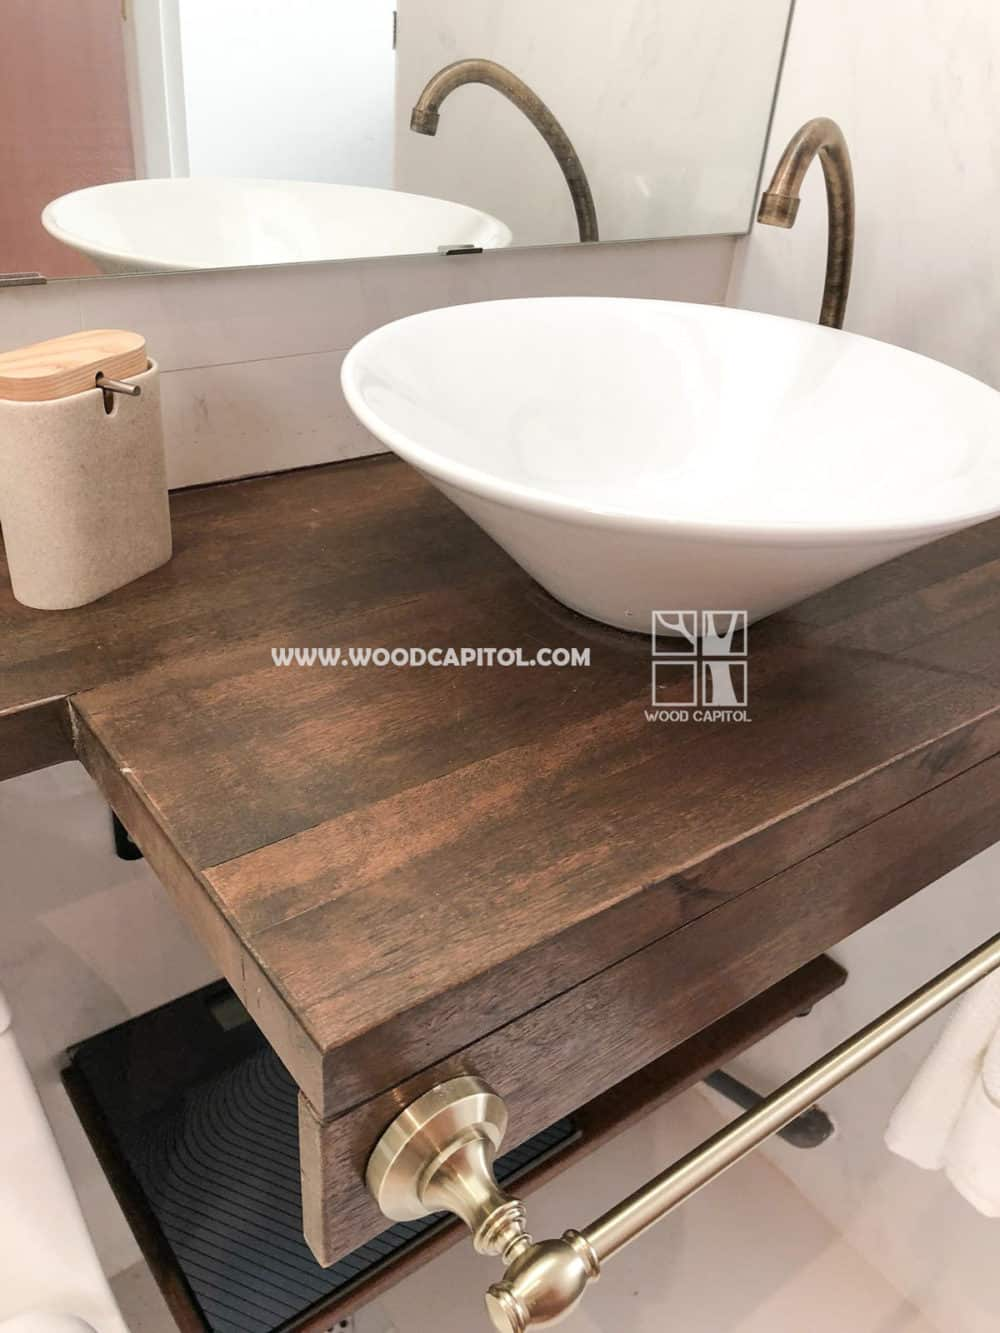 Wood Capitol Wooden Vanity Toilet 4